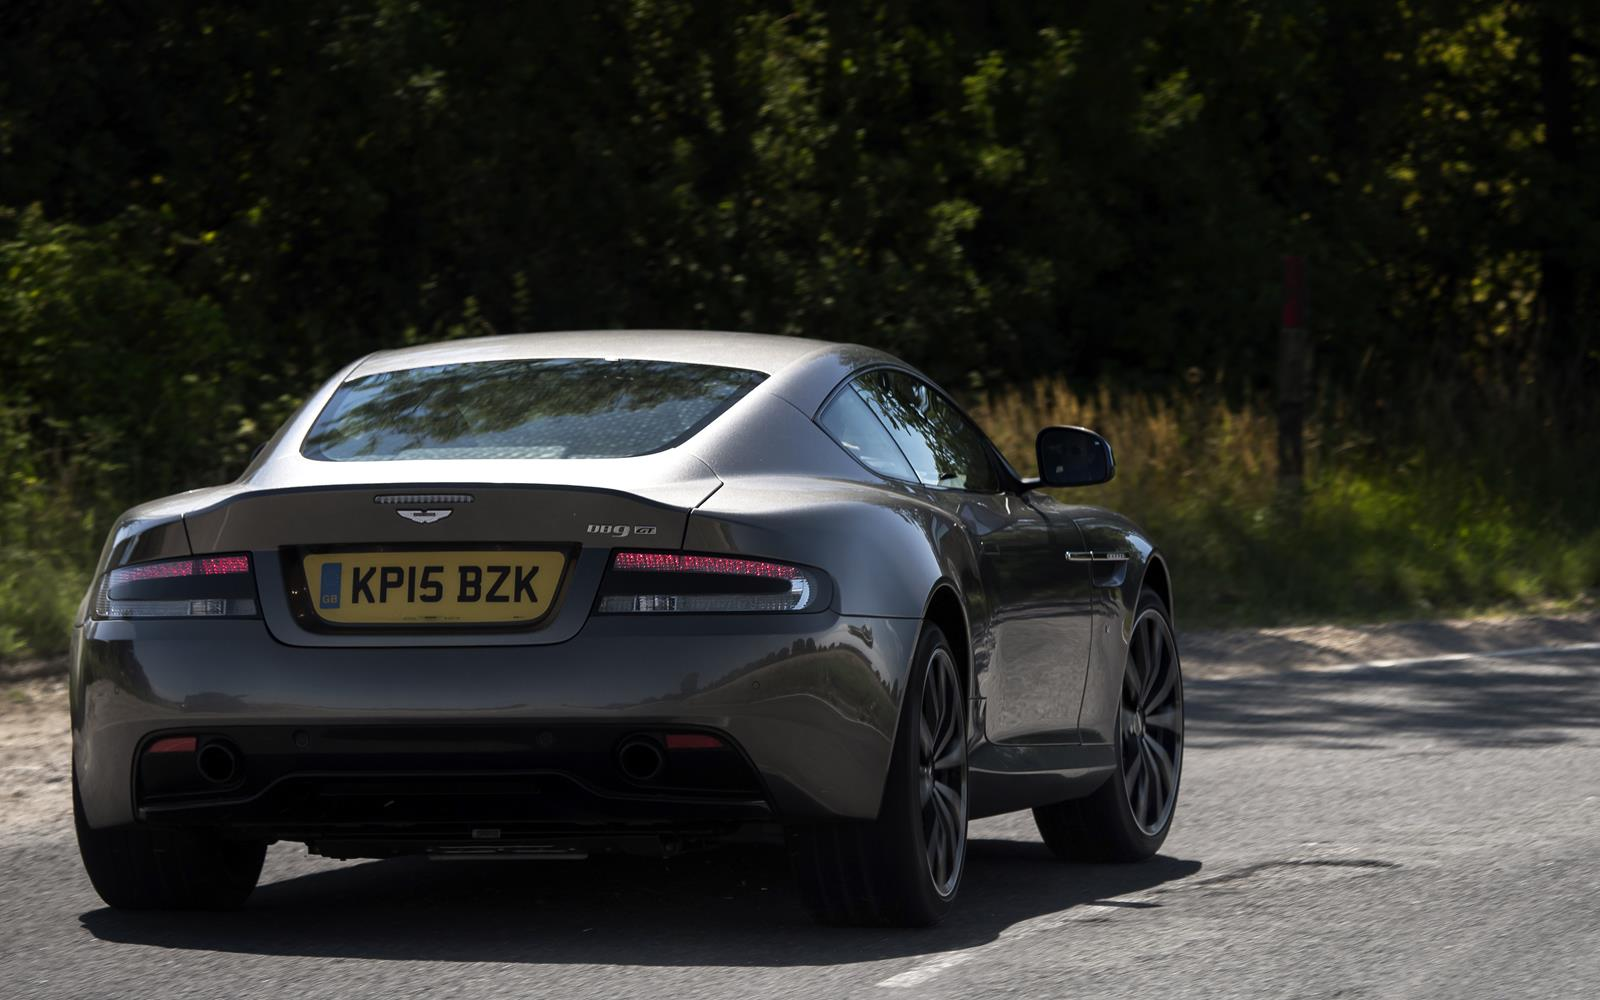 Aston Martin DB9 GT 2015 Dynamic Rear